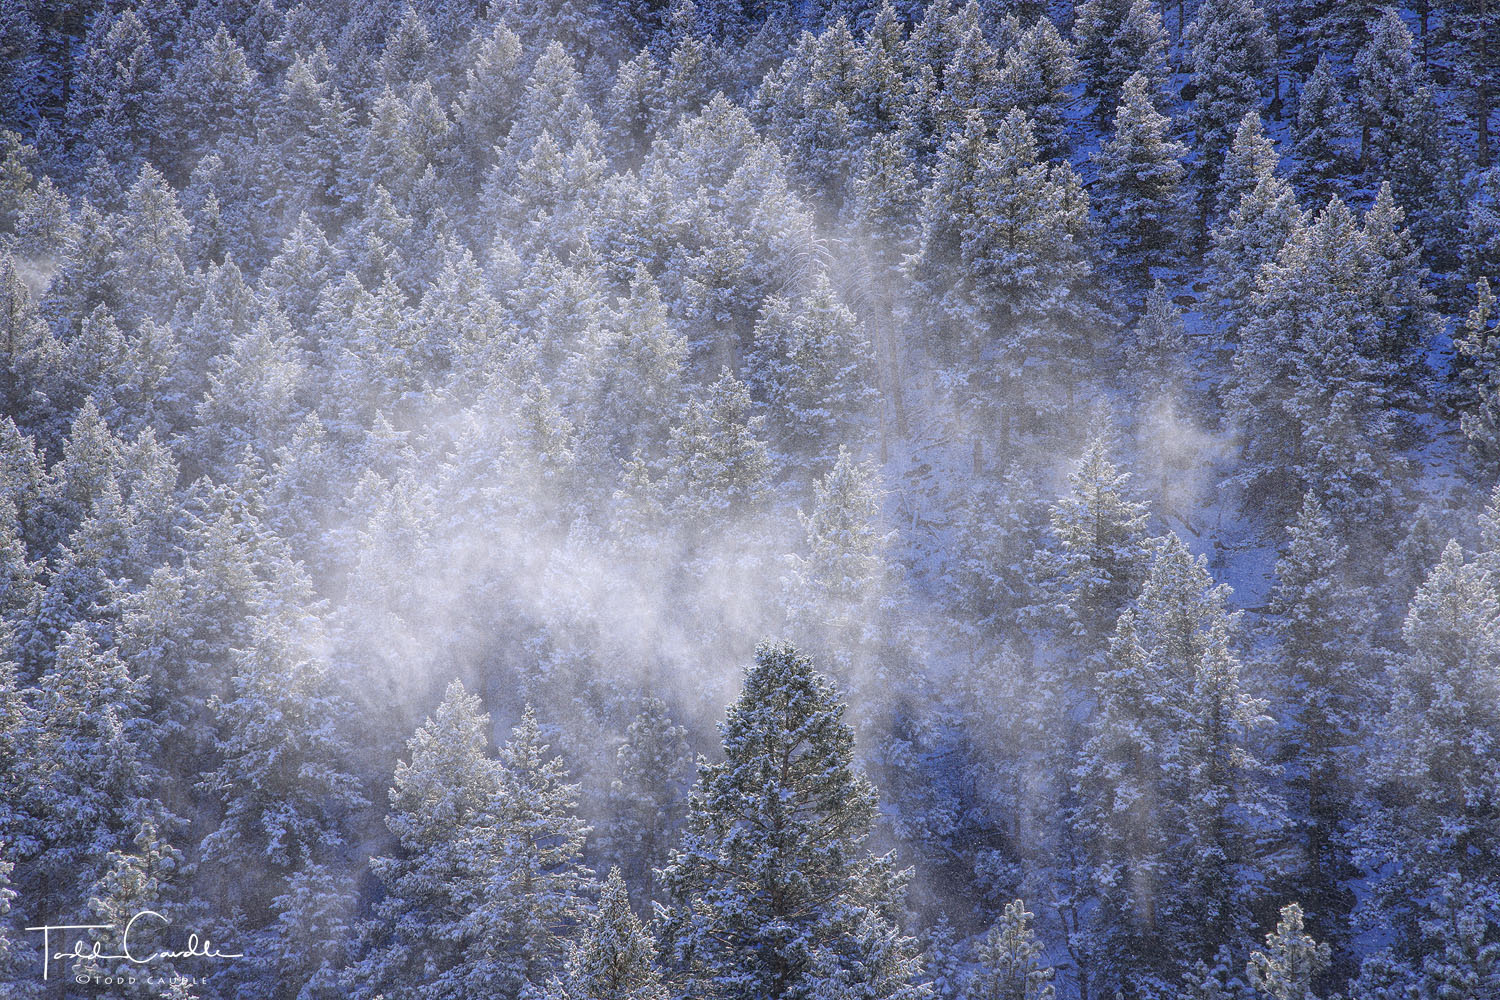 A fierce winter storm leaves behind a sparkling pine forest on Lookout Mountain.